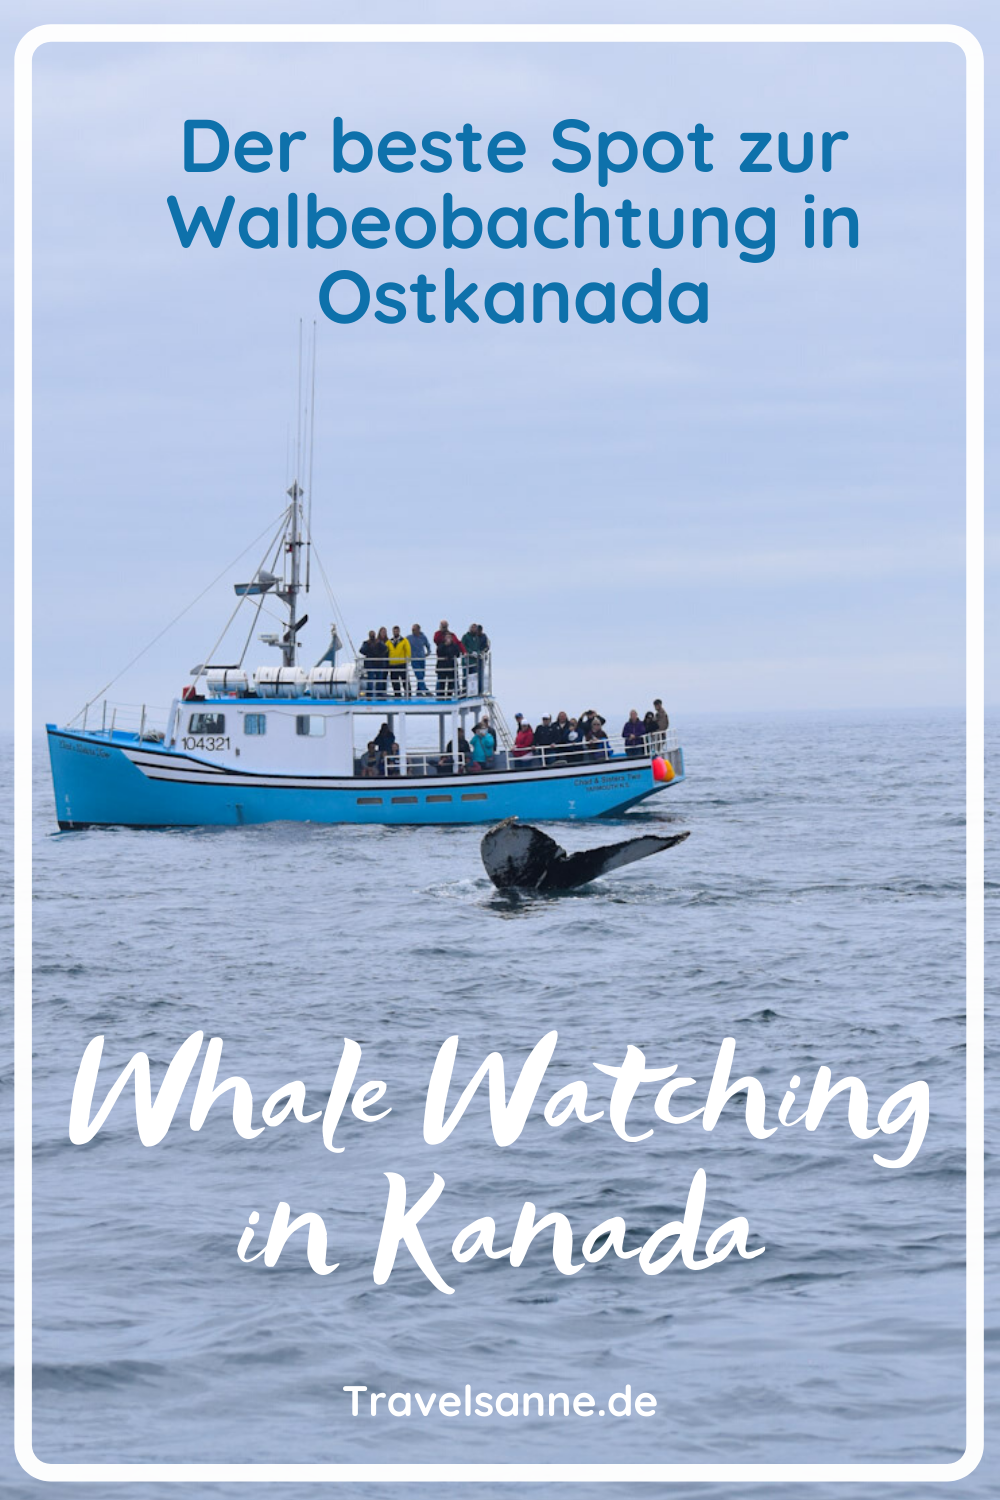 Whale Watching in Canada: Whale watching in Canada with children -  Our most breathtaking nature experience was watching whales with our children in Canada. We show yo - #canada #children #FamilyTravel #Mexico #RomanticTravel #watching #whale #WildlifeViewing